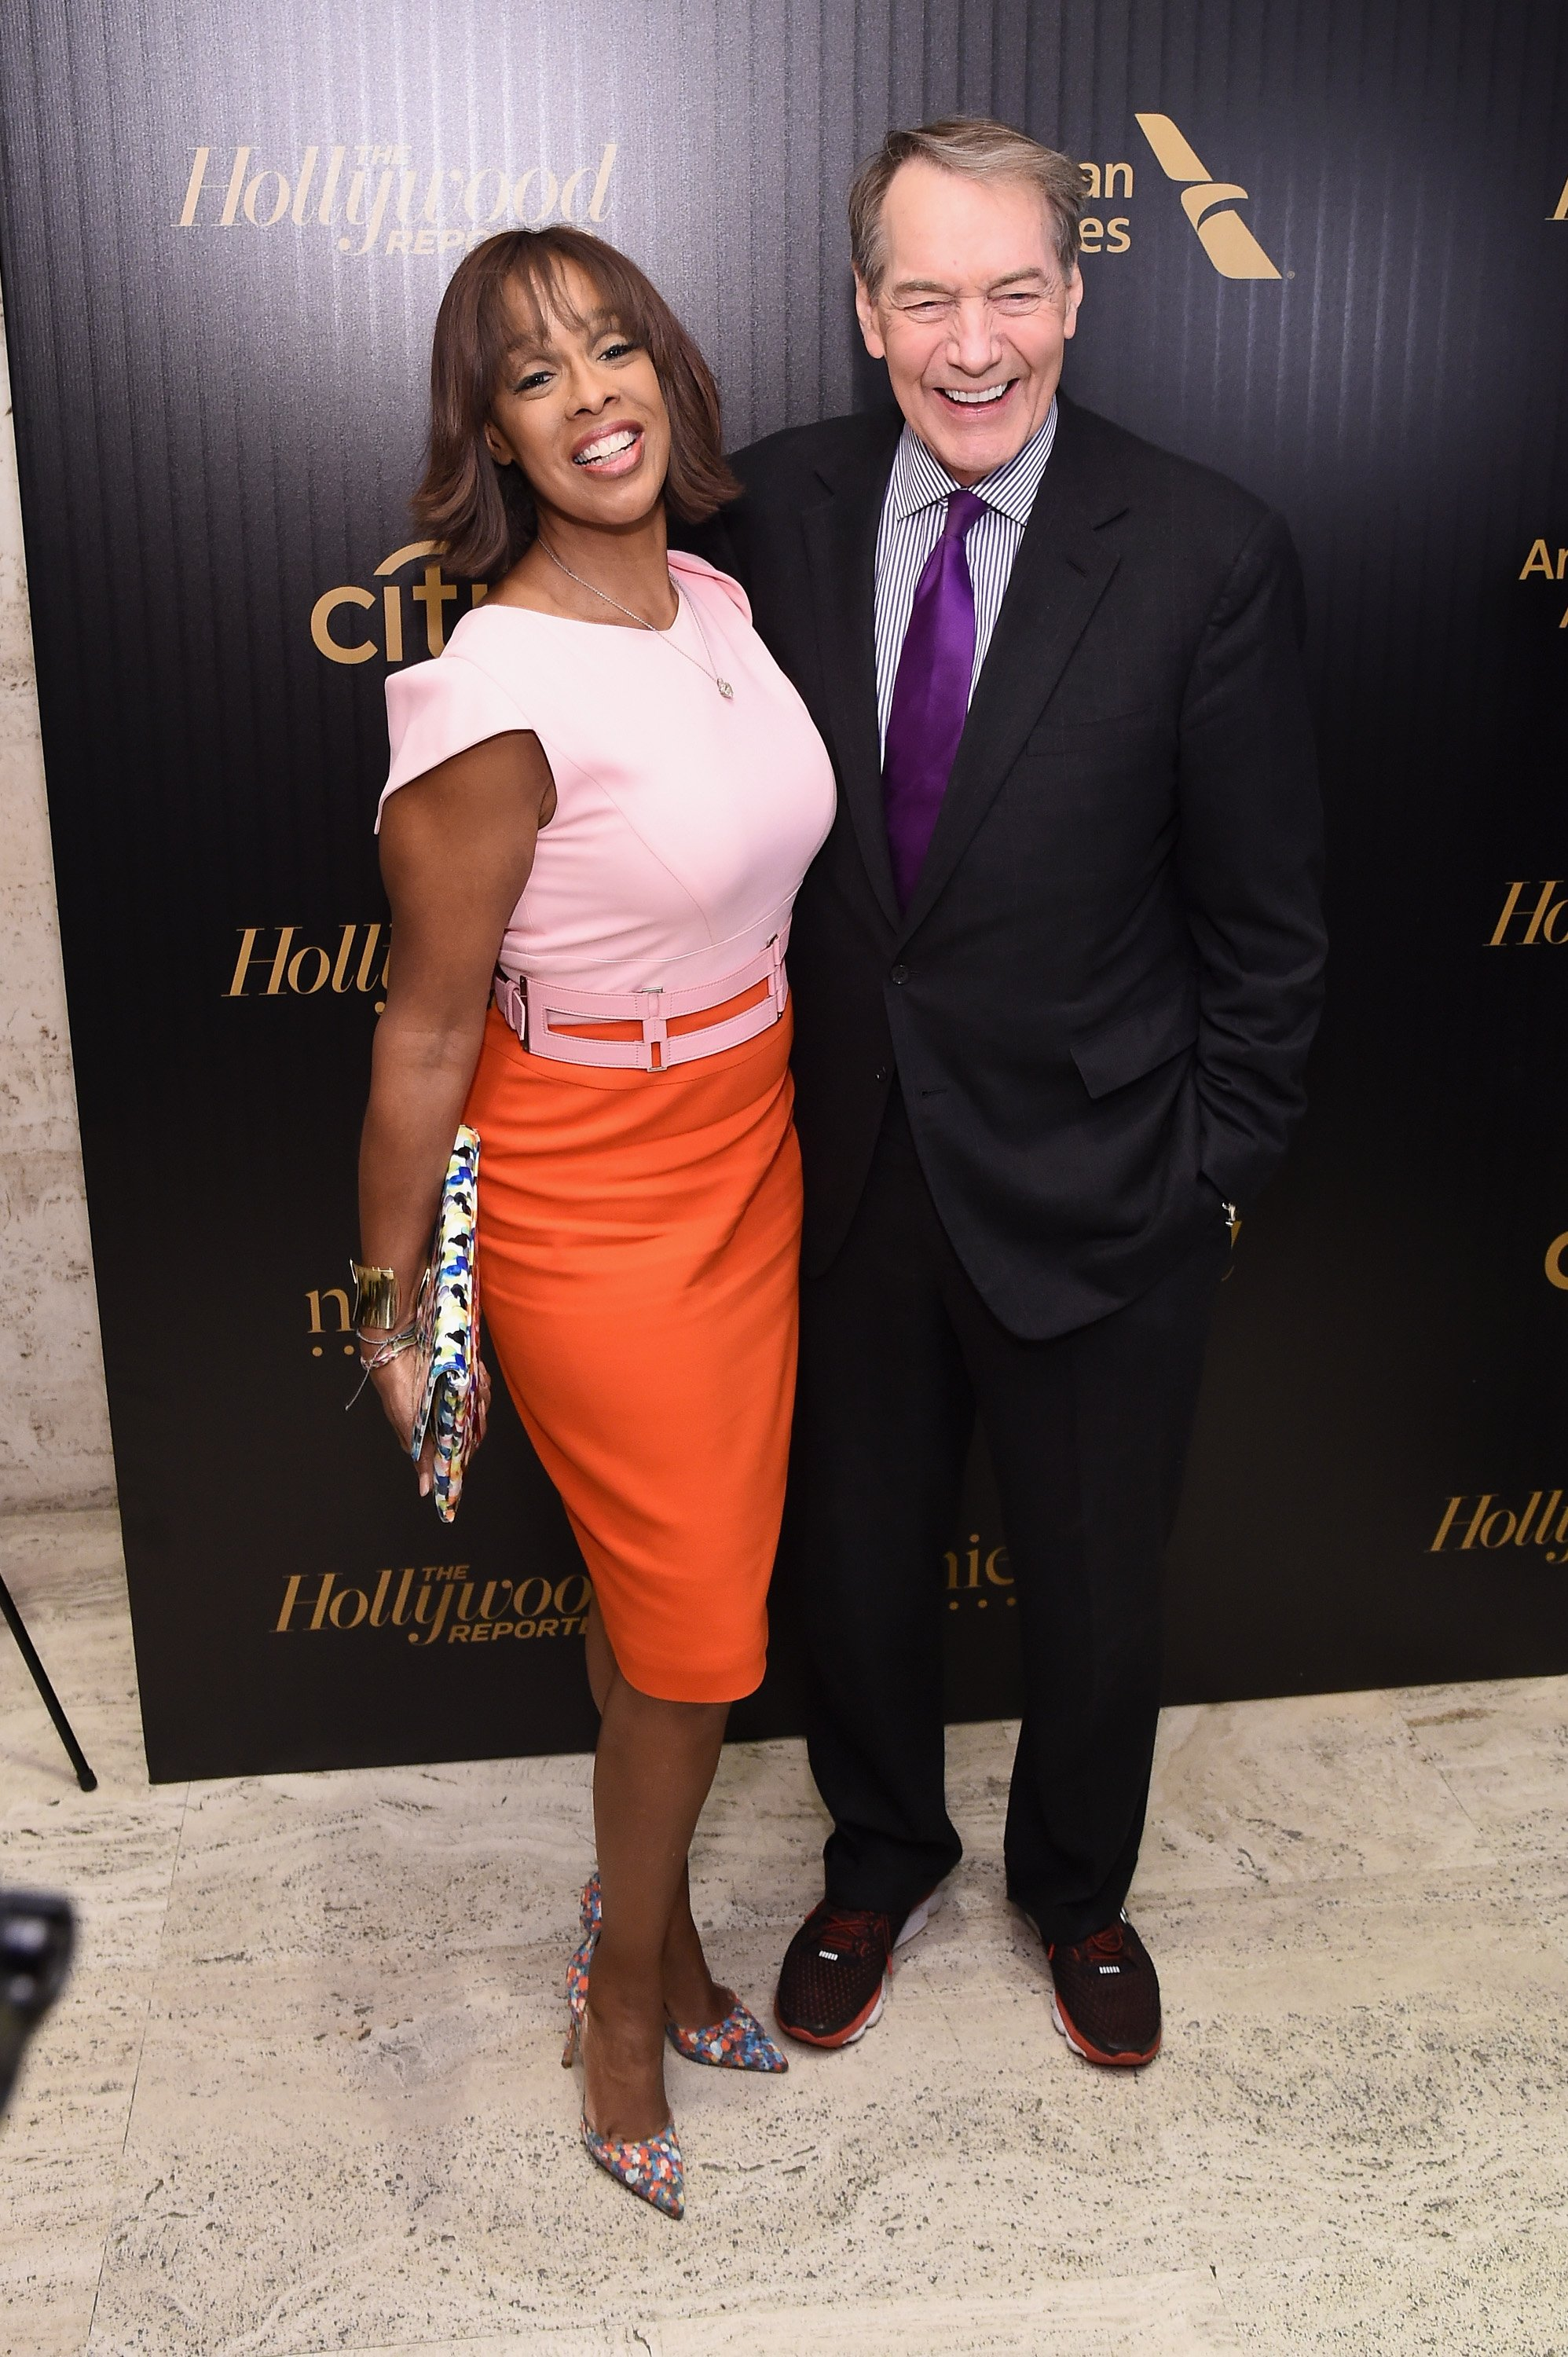 Gayle King and Charlie Rose attend the Hollywood Reporter's 2016 35 Most Powerful People in Media at Four Seasons Restaurant on April 6, 2016. | Photo: GettyImages